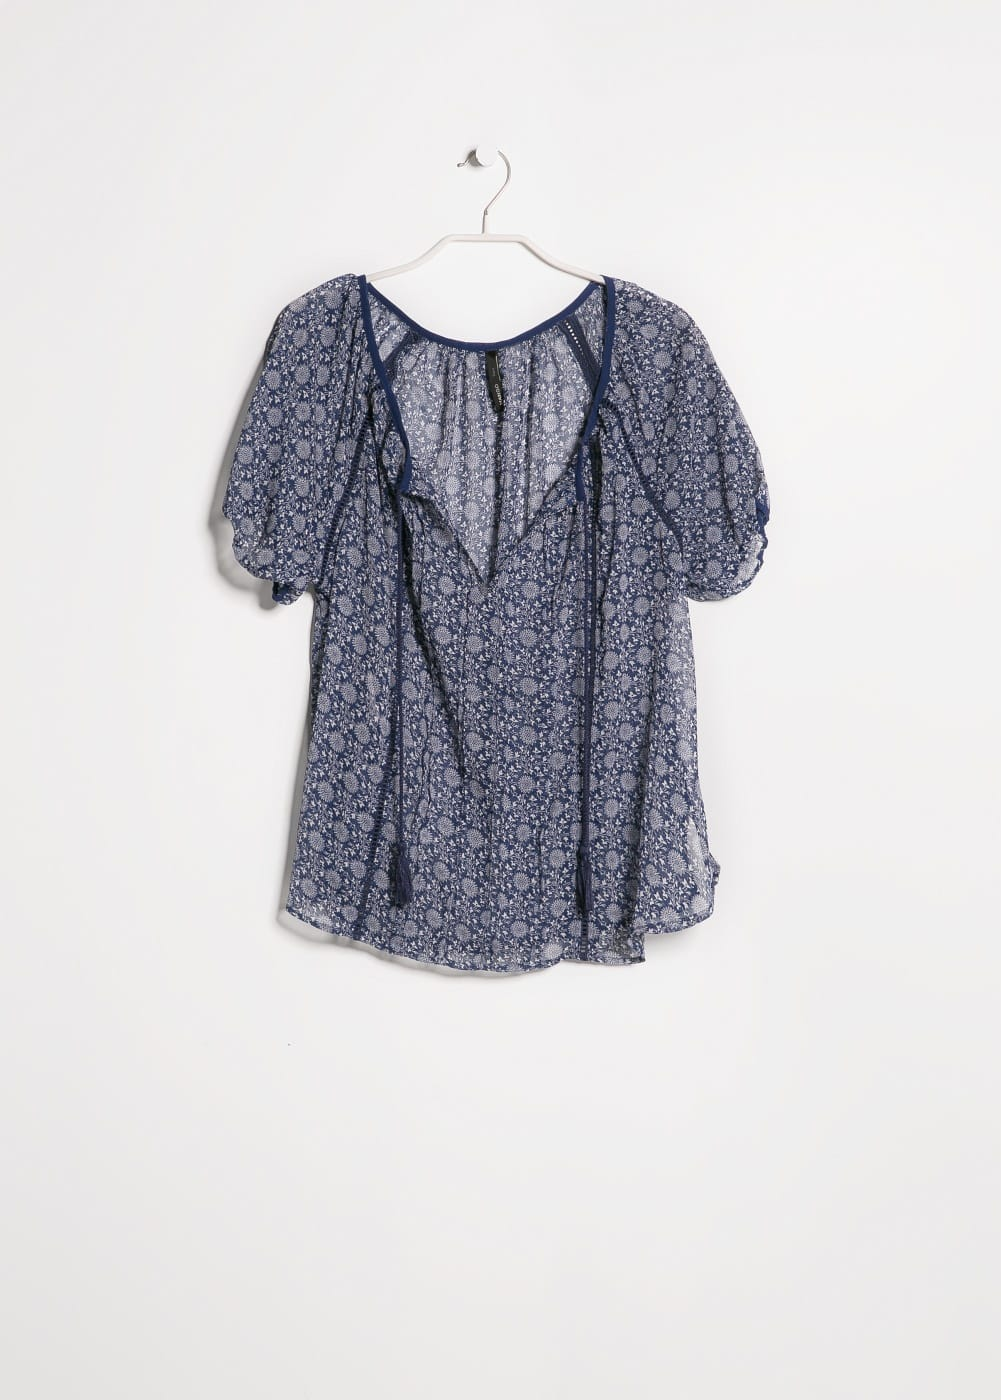 Trimmed ethnic blouse